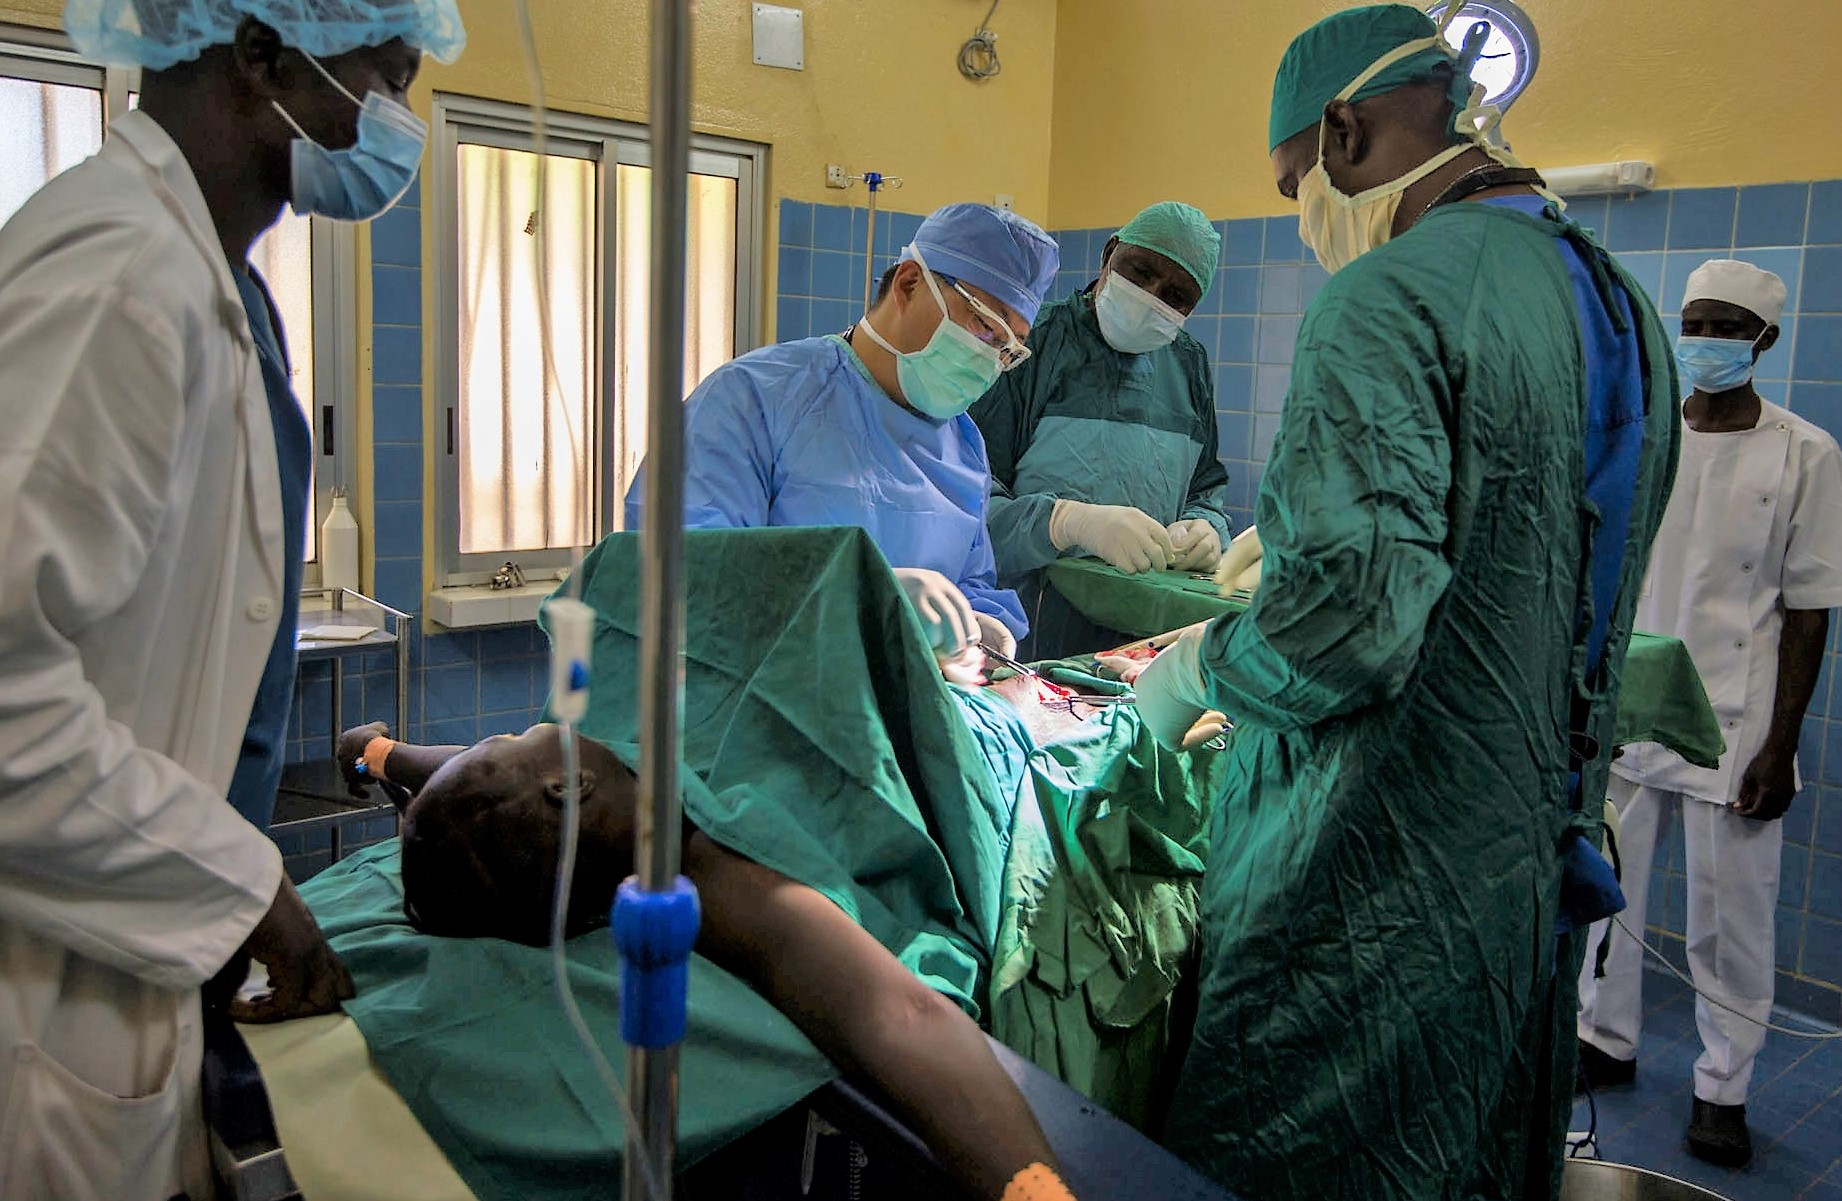 U.S. Army Maj. Joseph Lee, center, a general surgeon assigned to 212th Combat Support Hospital, assists Cameroonian Lt. Col. Sebastien Mvogo, right, a general surgeon, perform an appendectomy at the Regional Hospital of Garoua during Medical Readiness Training Exercise 17-5 in Garoua, Cameroon, Aug. 8, 2017. The mutually beneficial exercise, being conducted for the first time in the region, offers opportunities for the partnered militaries to share best practices and improve medical treatment processes. (U.S. Army Africa photo by Staff Sgt. Shejal Pulivarti)